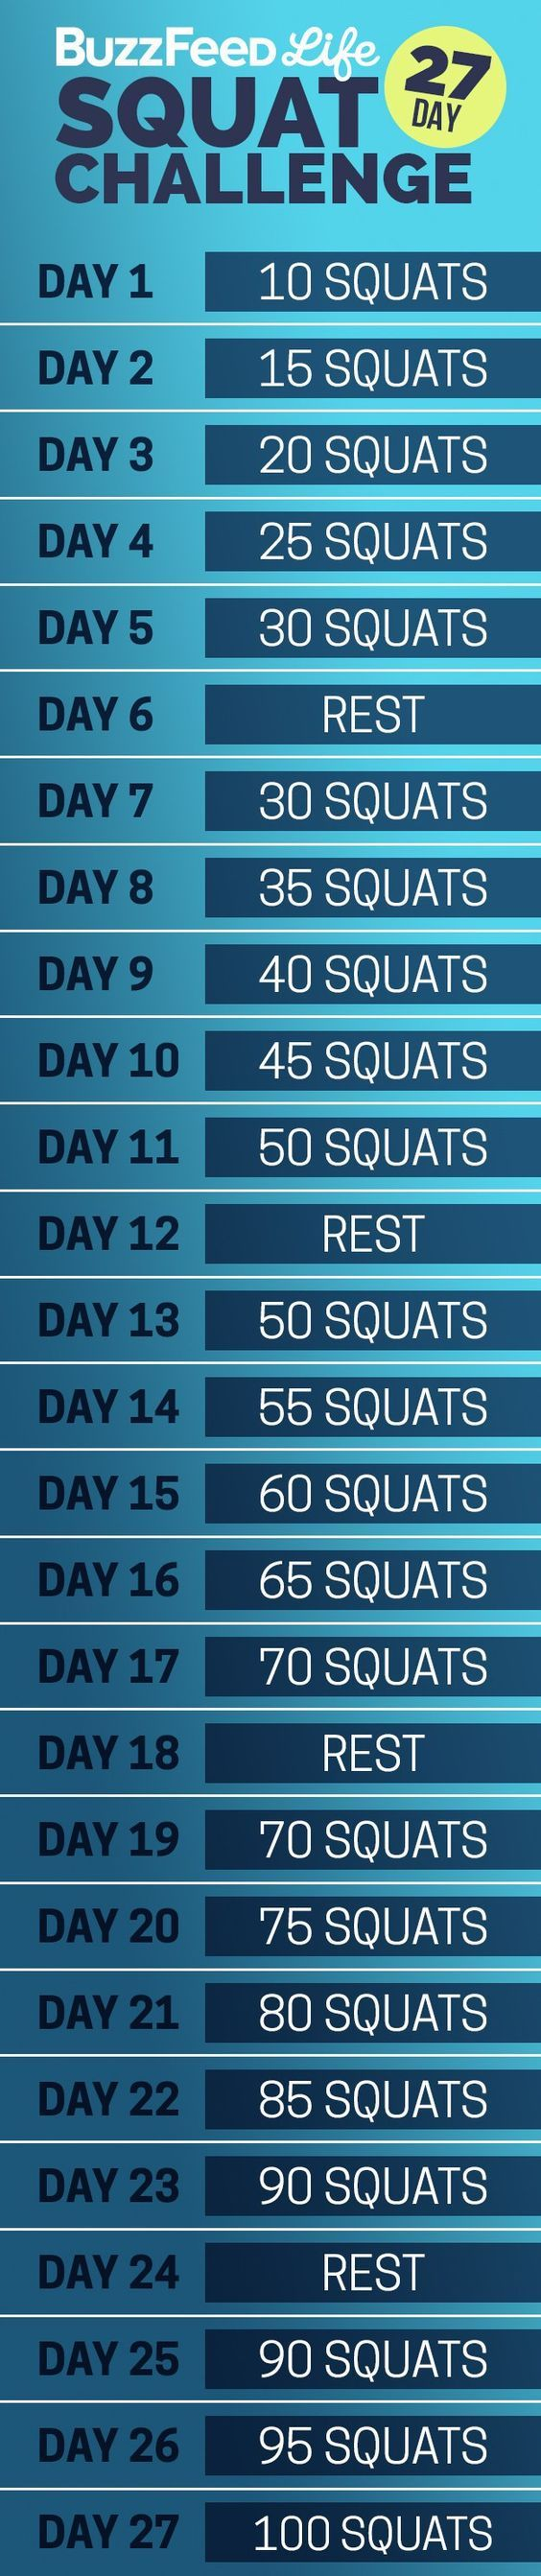 Learn how to do a proper squat — a staple of any effective workout routine — and build the fitness to do 100 in a single day. The squat is a trainer's favorite because it works your glutes, quads, hamstrings, hips, and even your abs. At the end of this ch